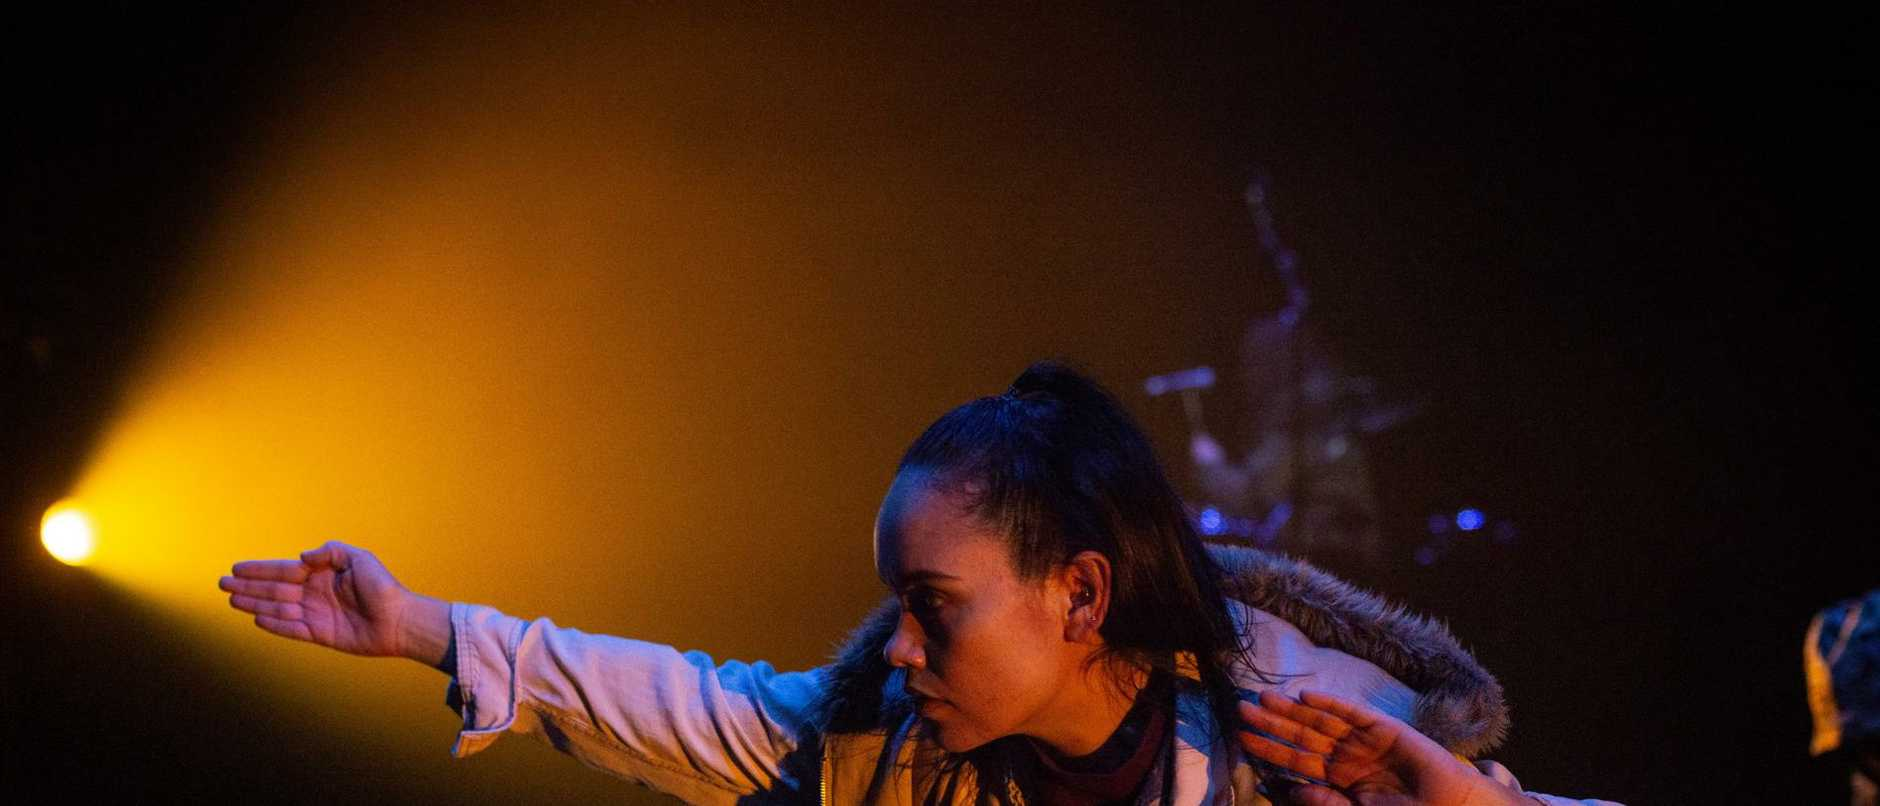 Silence is a new dance work that challenges Australia's nationhood and pokes fun at 25o years of occupation by interlopers who should really be paying rent.